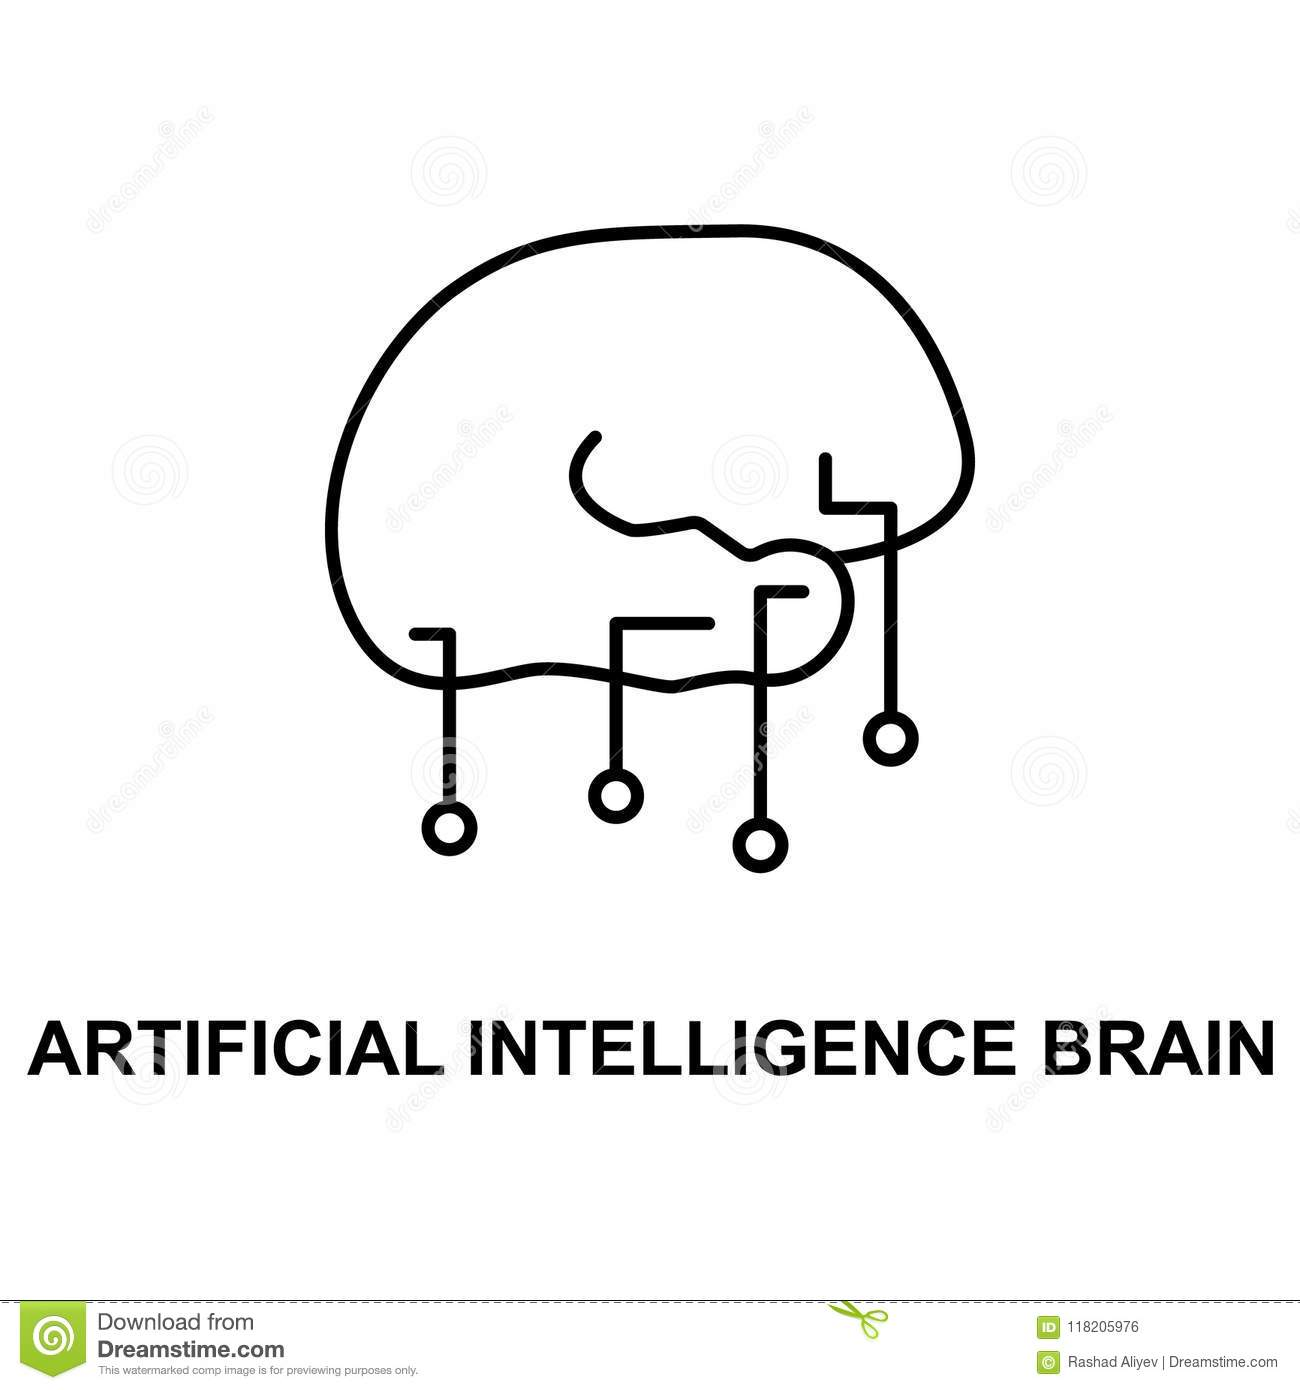 artificial intelligence brain icon. Element of technologies icon with name for mobile concept and web apps. Thin line artificial i